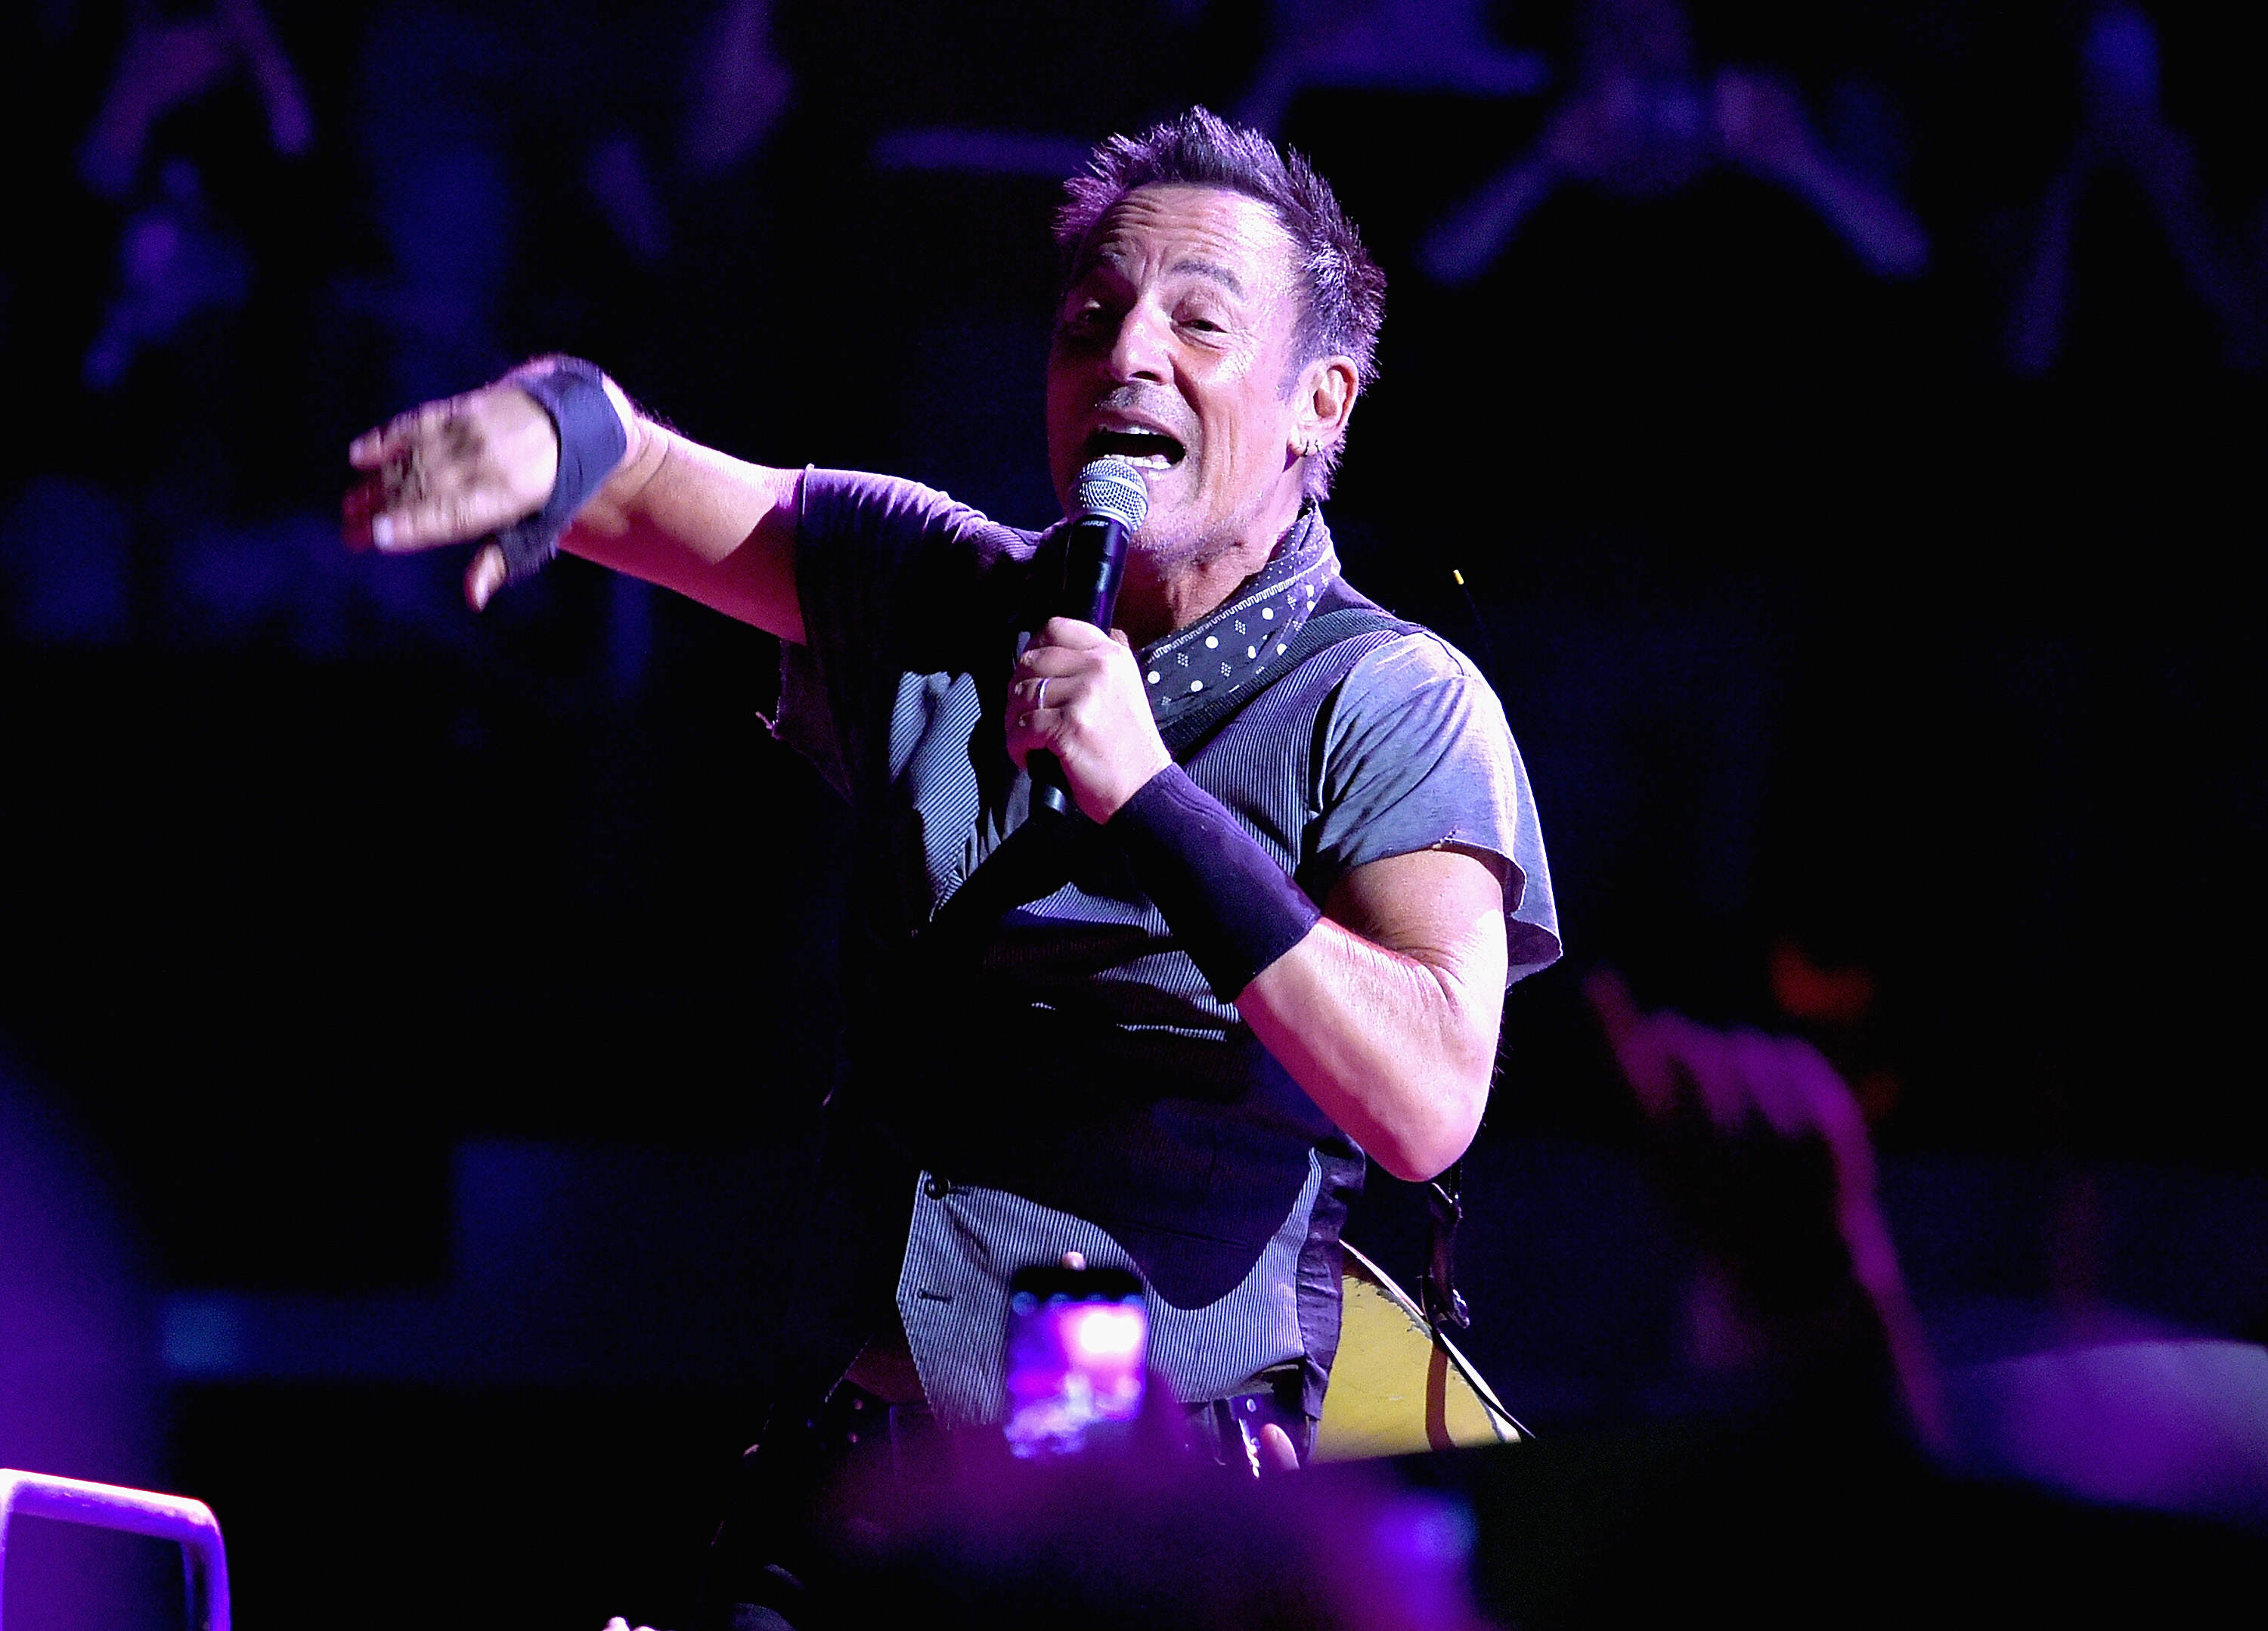 Bruce Springsteen Cancels North Carolina Gig Over Anti LGBT Law GettyImages 517941312